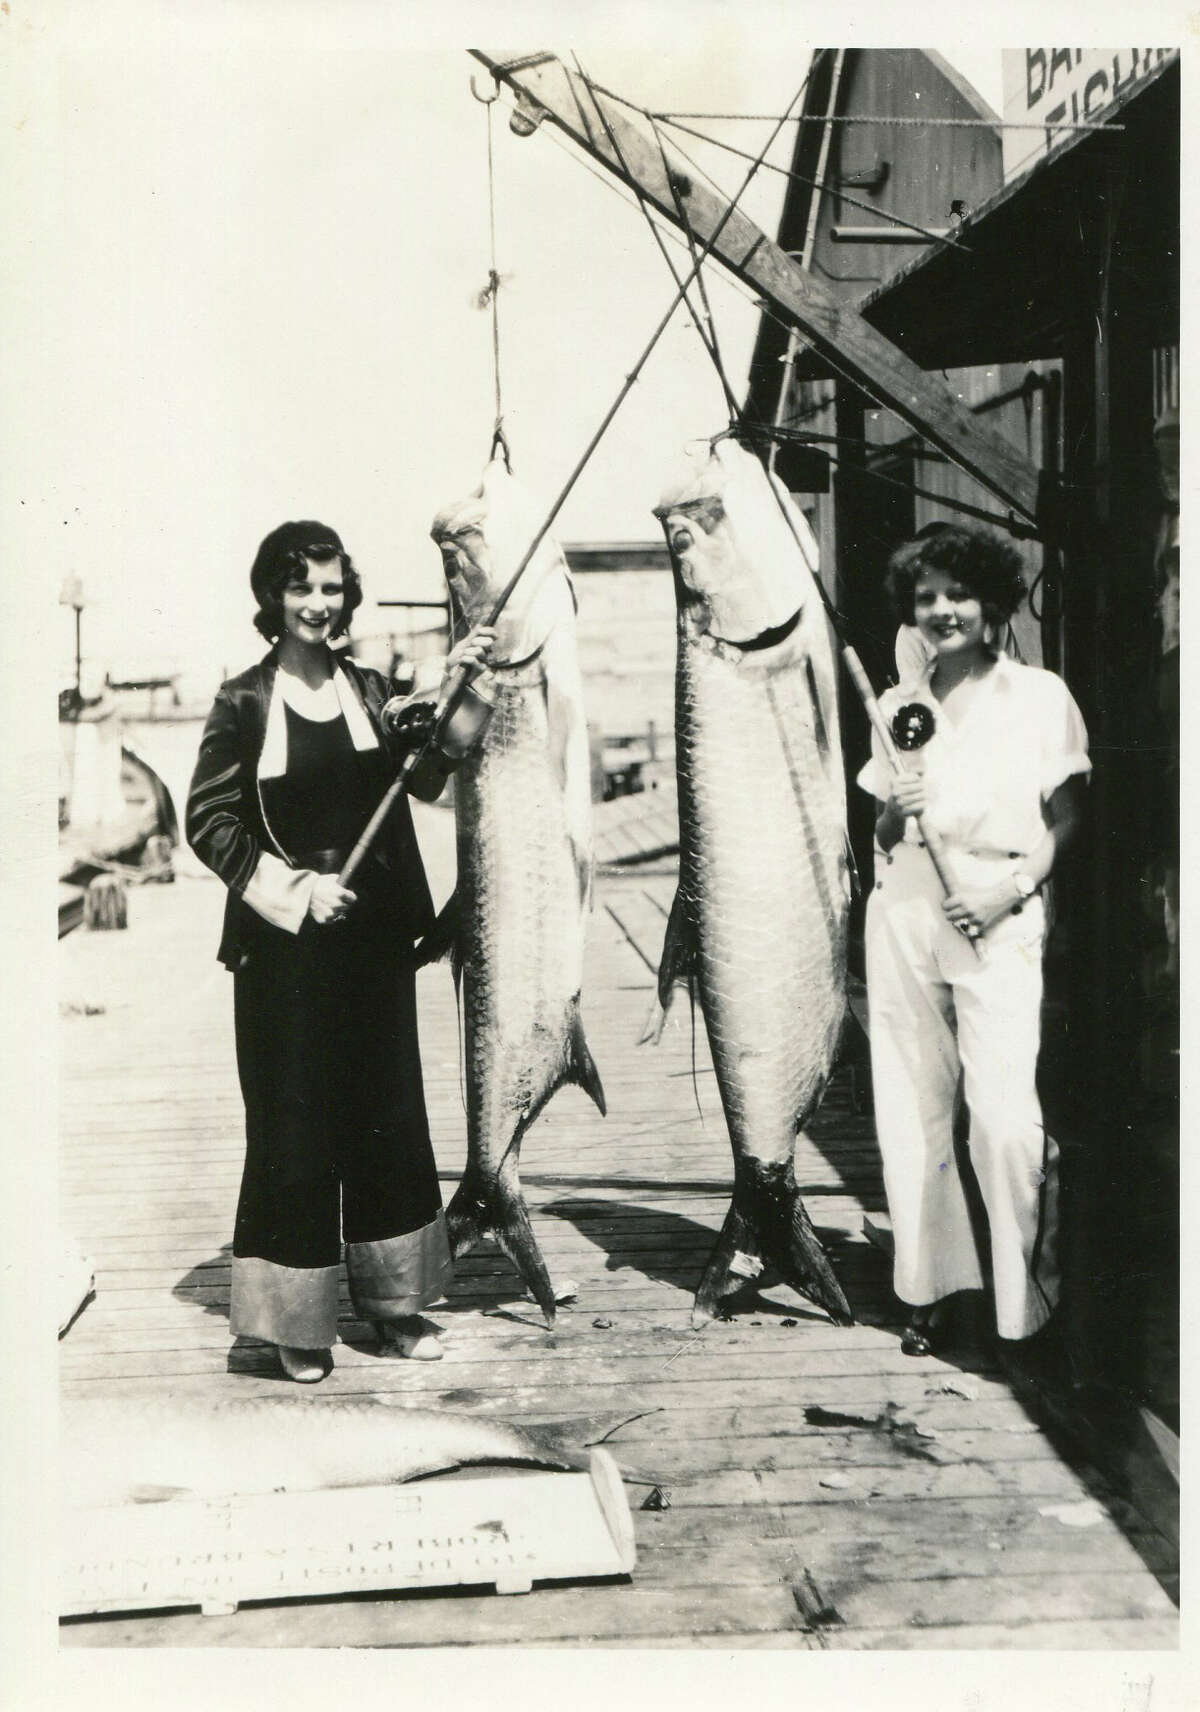 Fish the size of women testified to a fisherman's paradise in 1931.